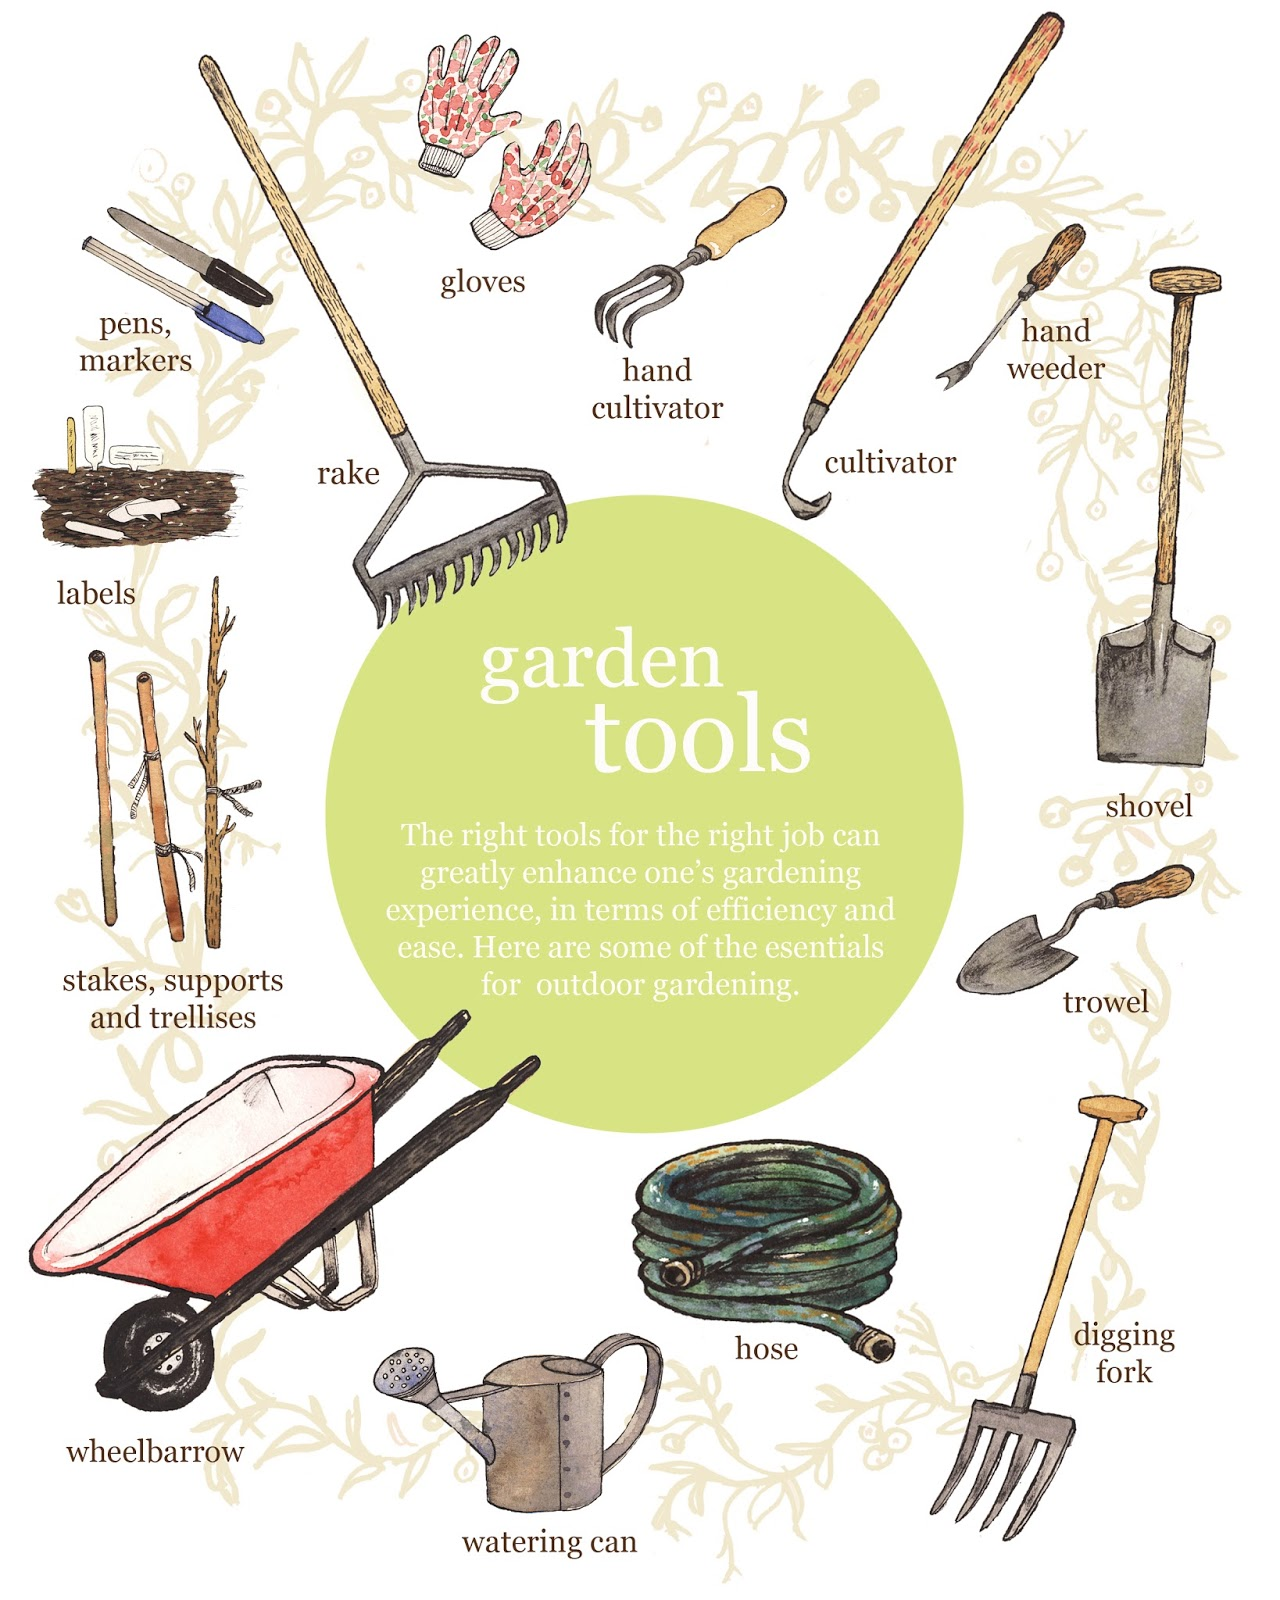 Robin clugston gardening tools and compost advice for Gardening tools list and their uses